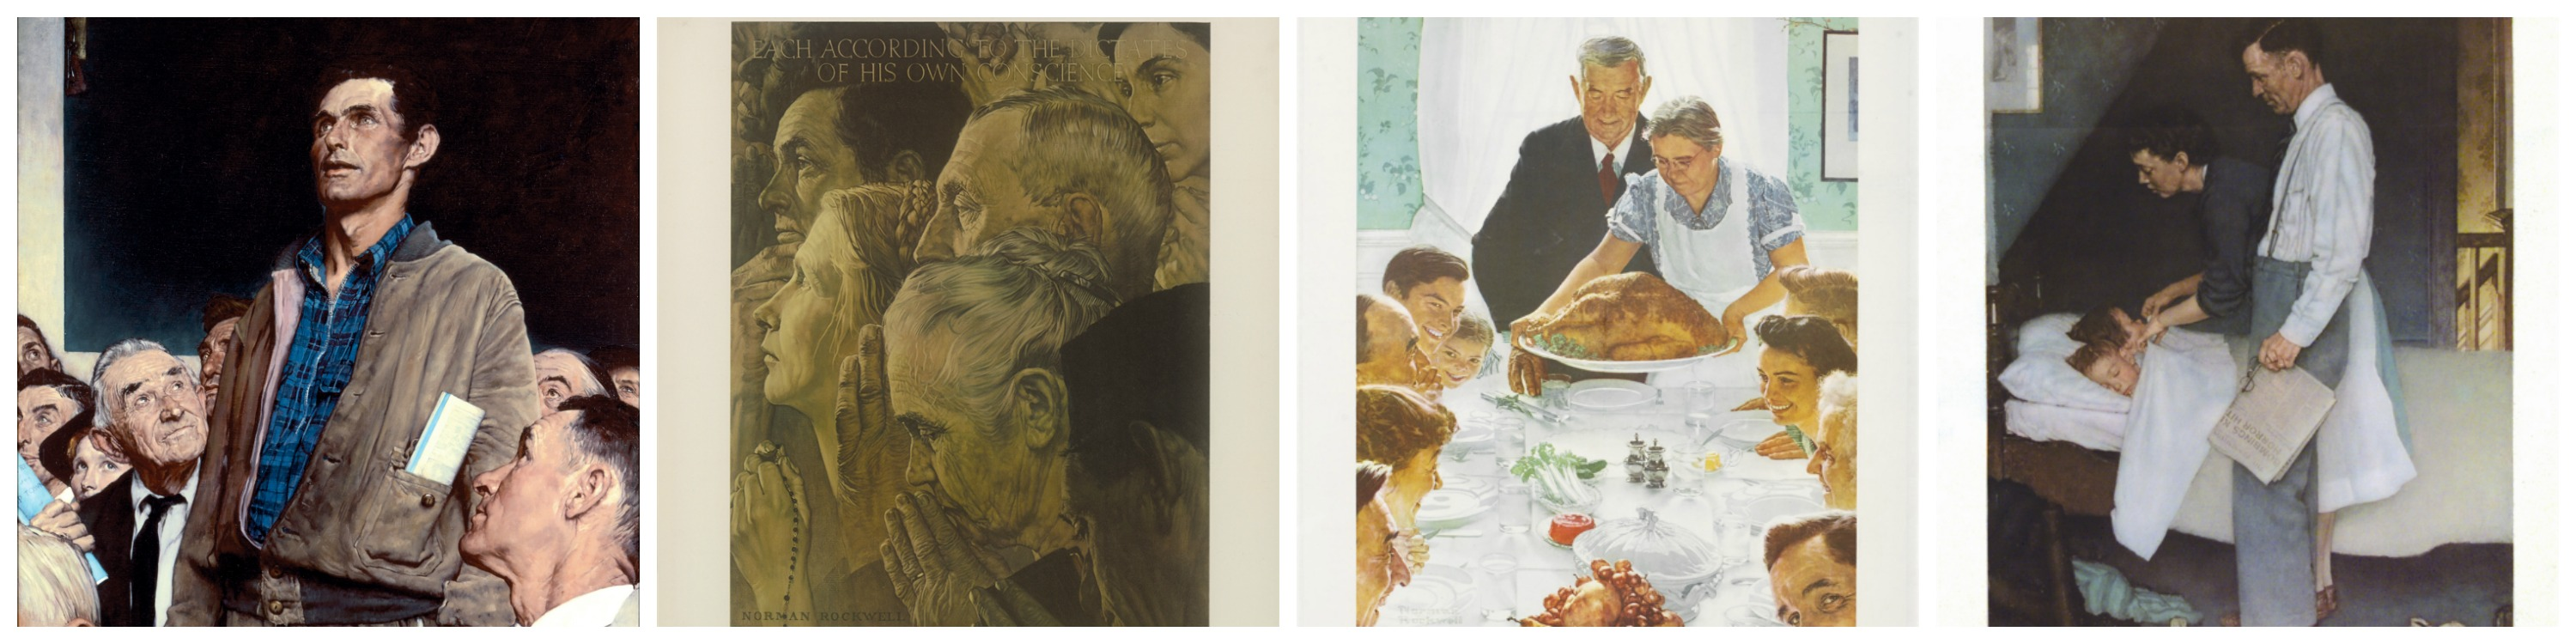 """Norman Rockwell's """"Four Freedoms"""" (1943)"""